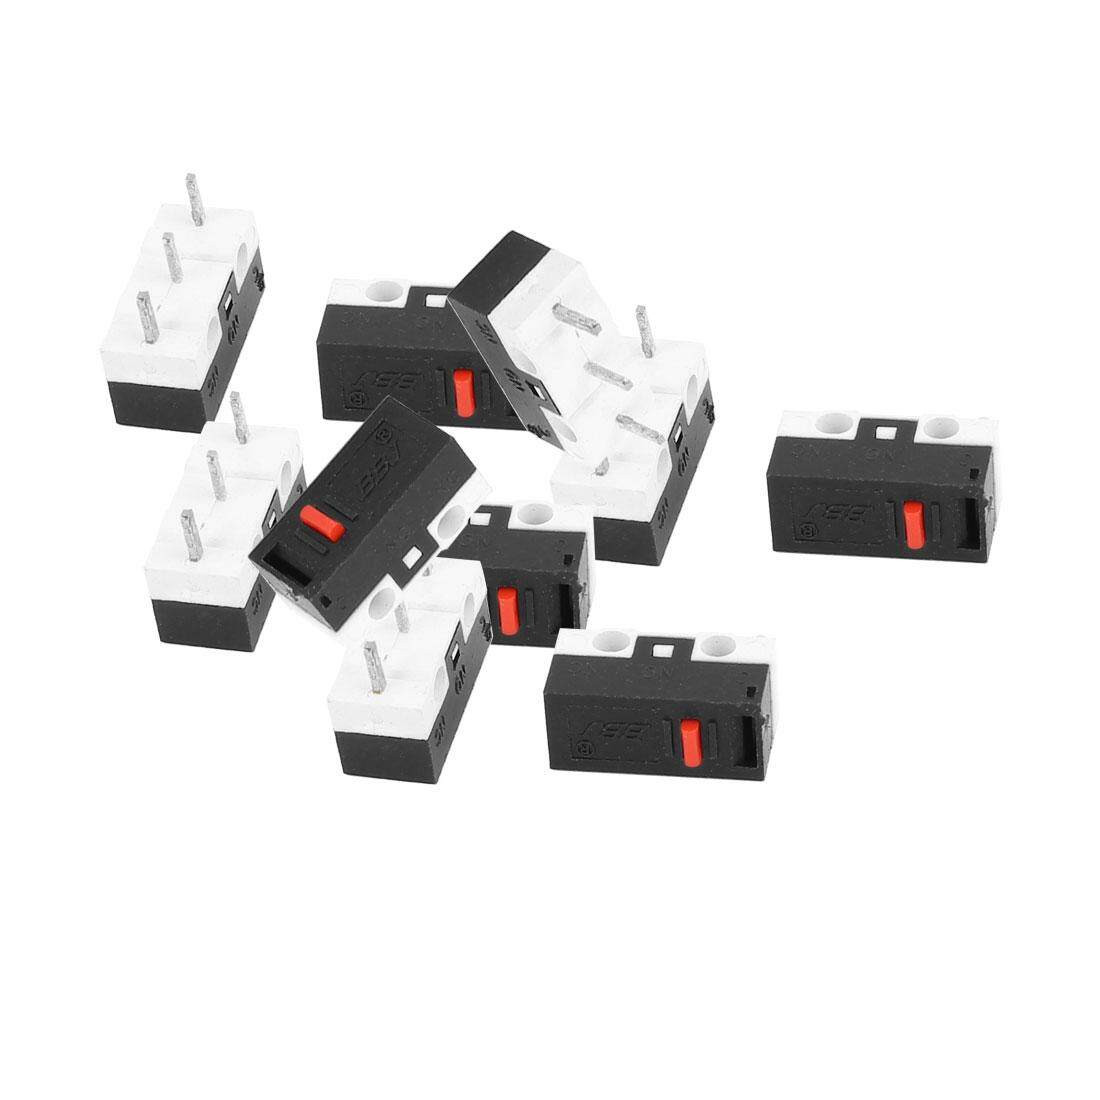 AXA 10 Pcs SPDT 2 Position Momentary Micro Limit Switch 2A 125VAC for Computer Mouse